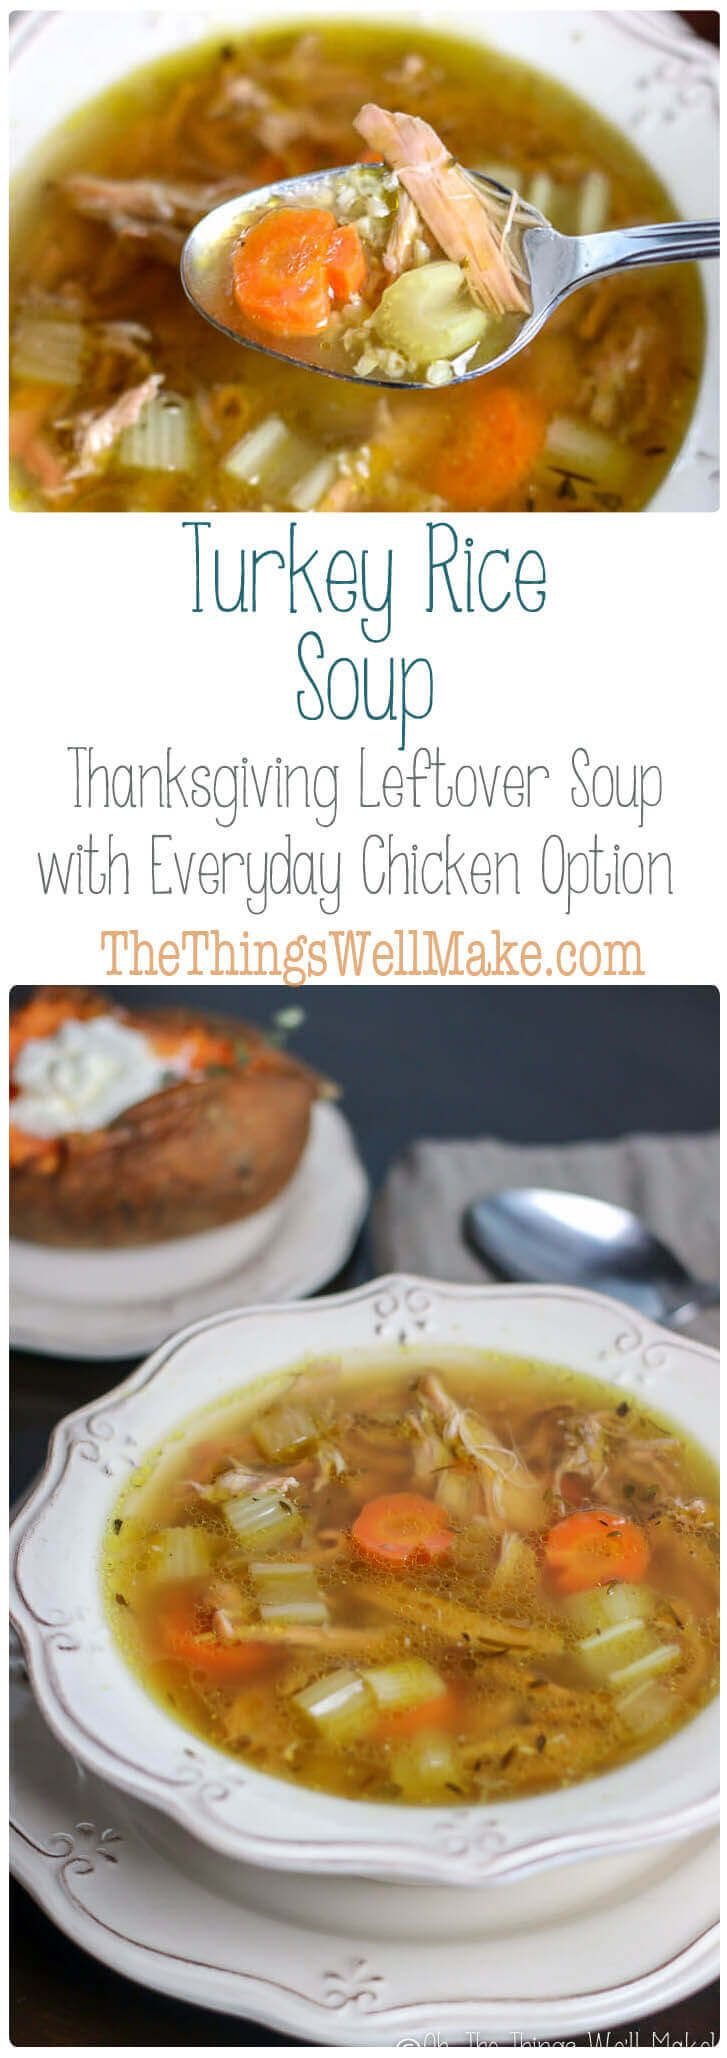 Don't throw away the skin, bones and leftover turkey pieces, make this turkey rice soup, the best Thanksgiving leftover soup idea! You can also do this any time of year with leftover chicken! #Thanksgiving #leftovers #soup via @thethingswellmake